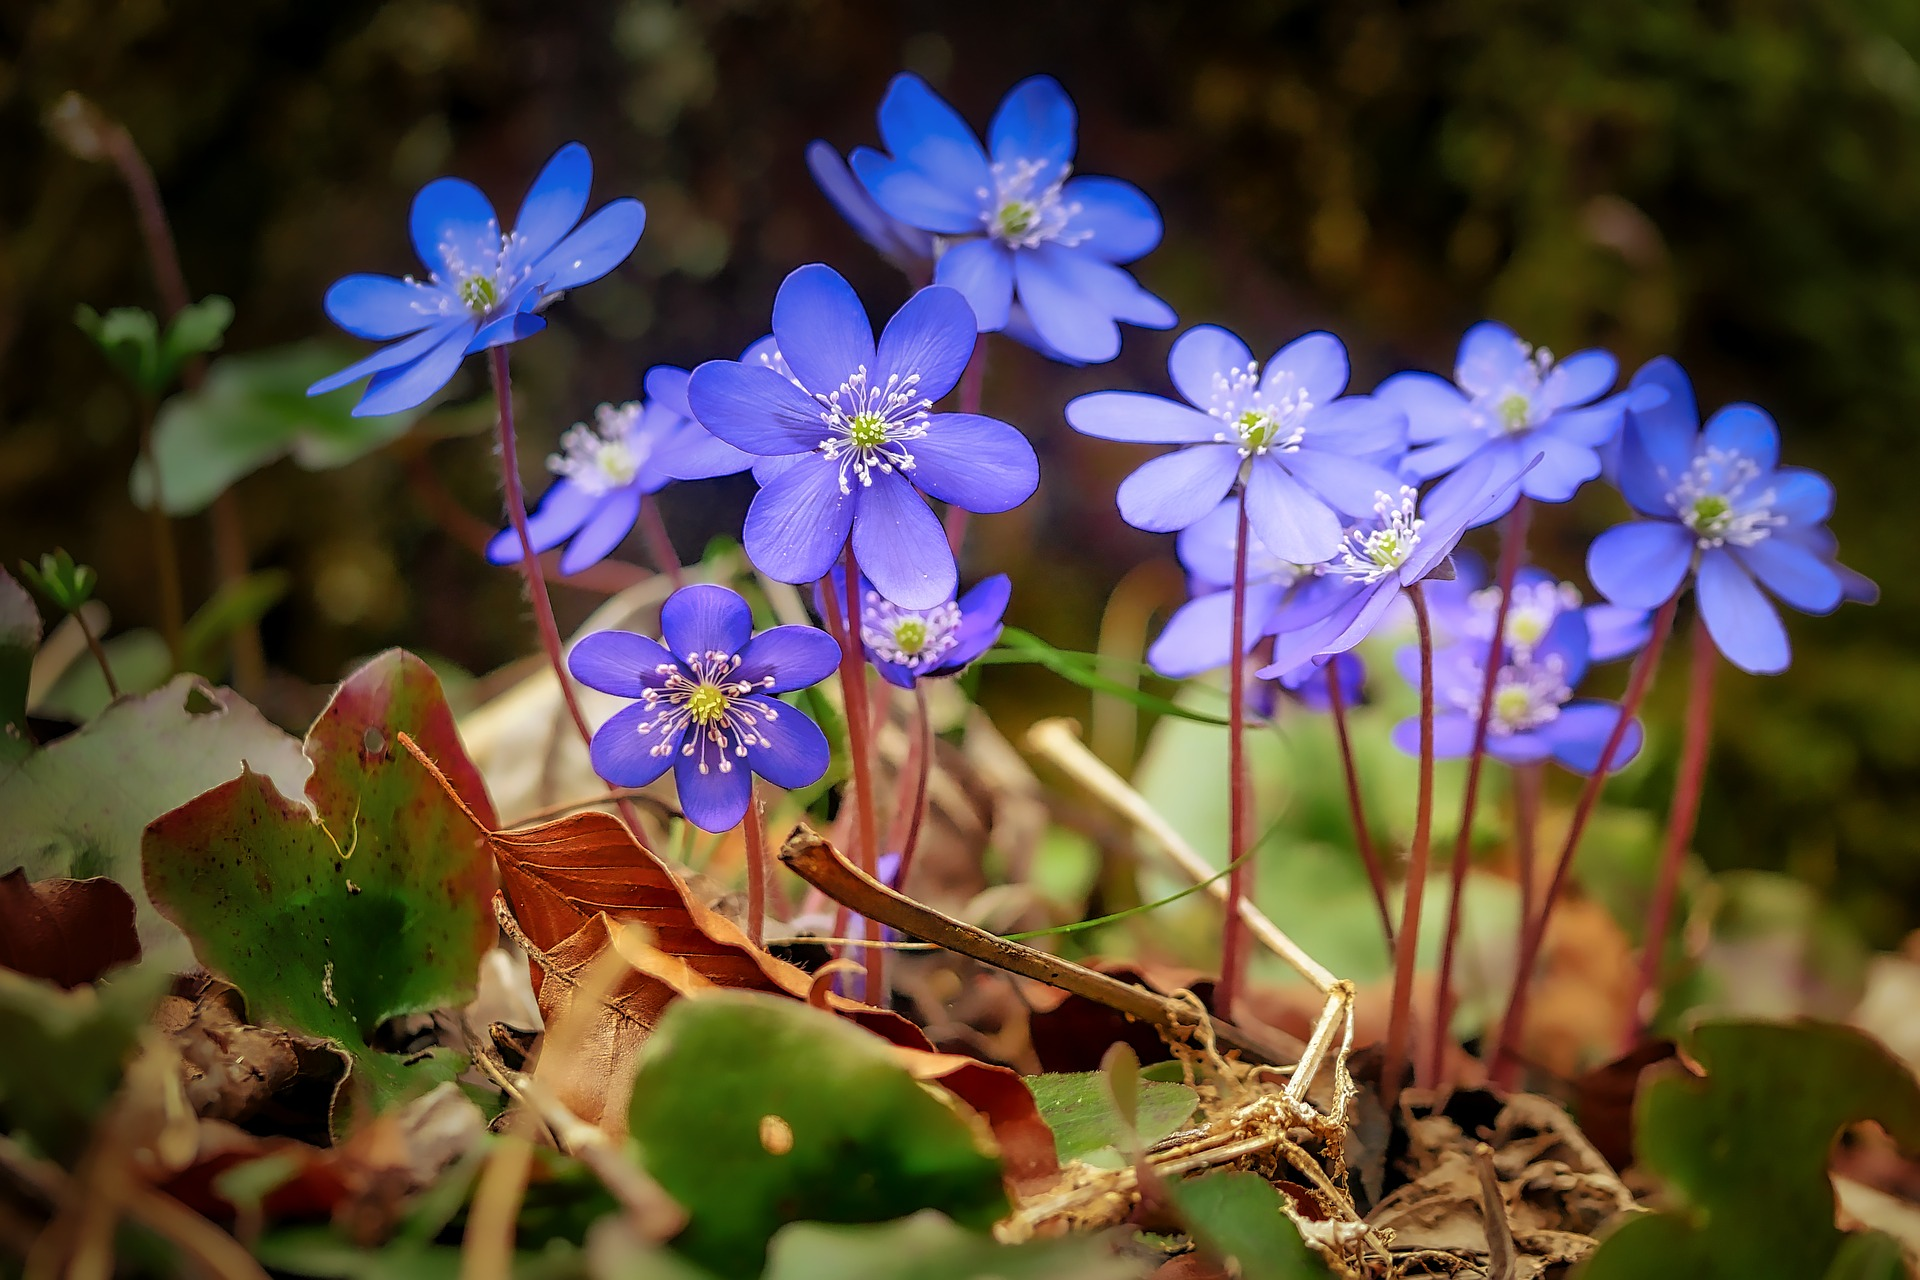 Little blue flowers growing in the forest